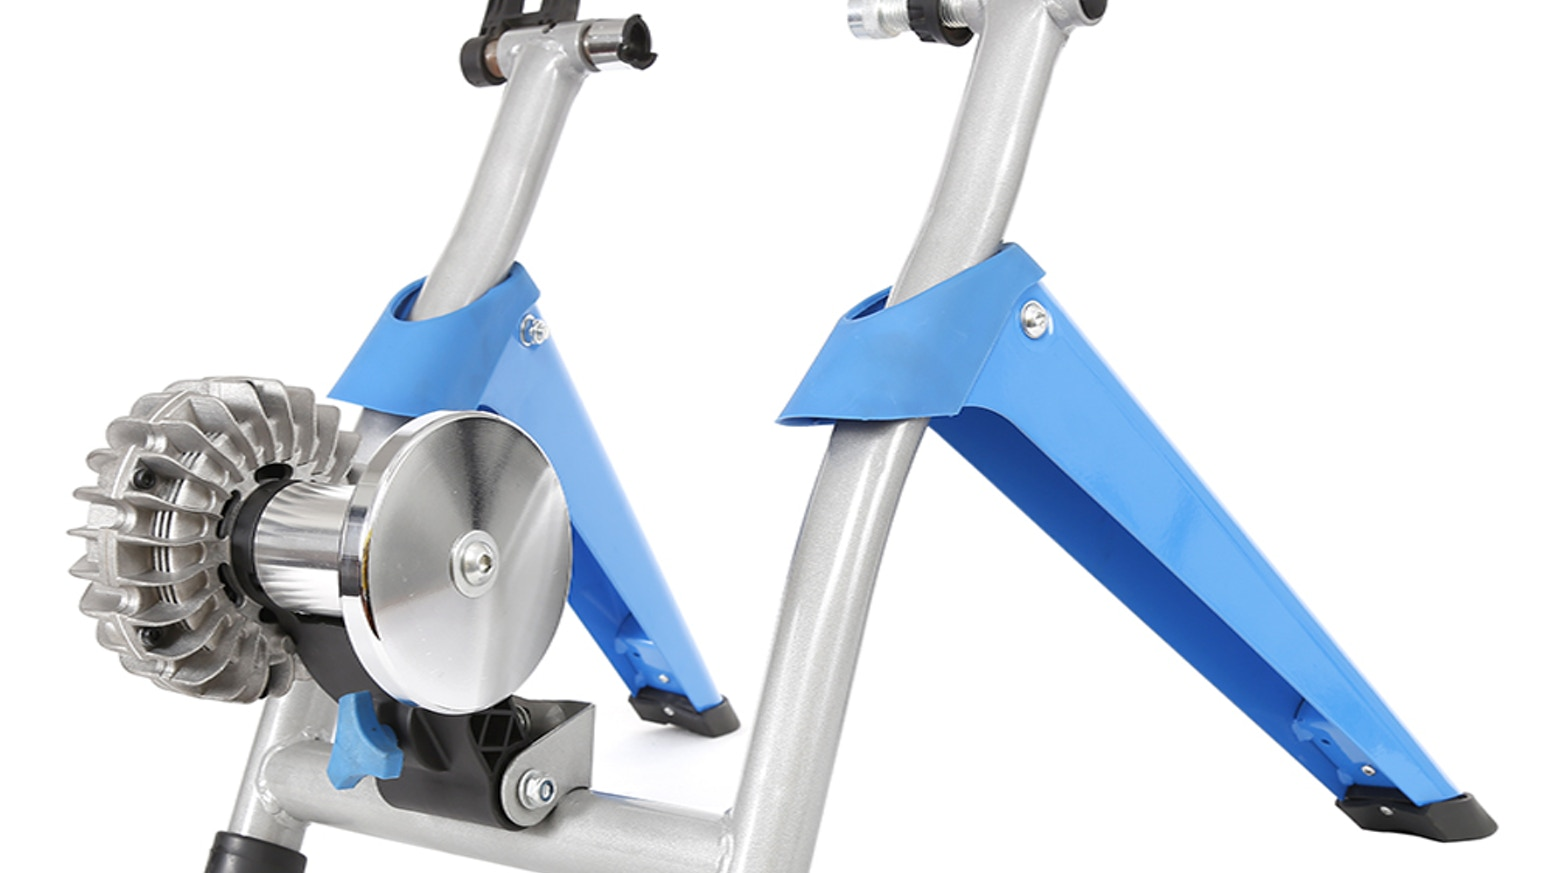 A good value, high quality magnetic + fluid resistance turbo trainer to keep the isolated, distanced, and quarantined fit and healthy.